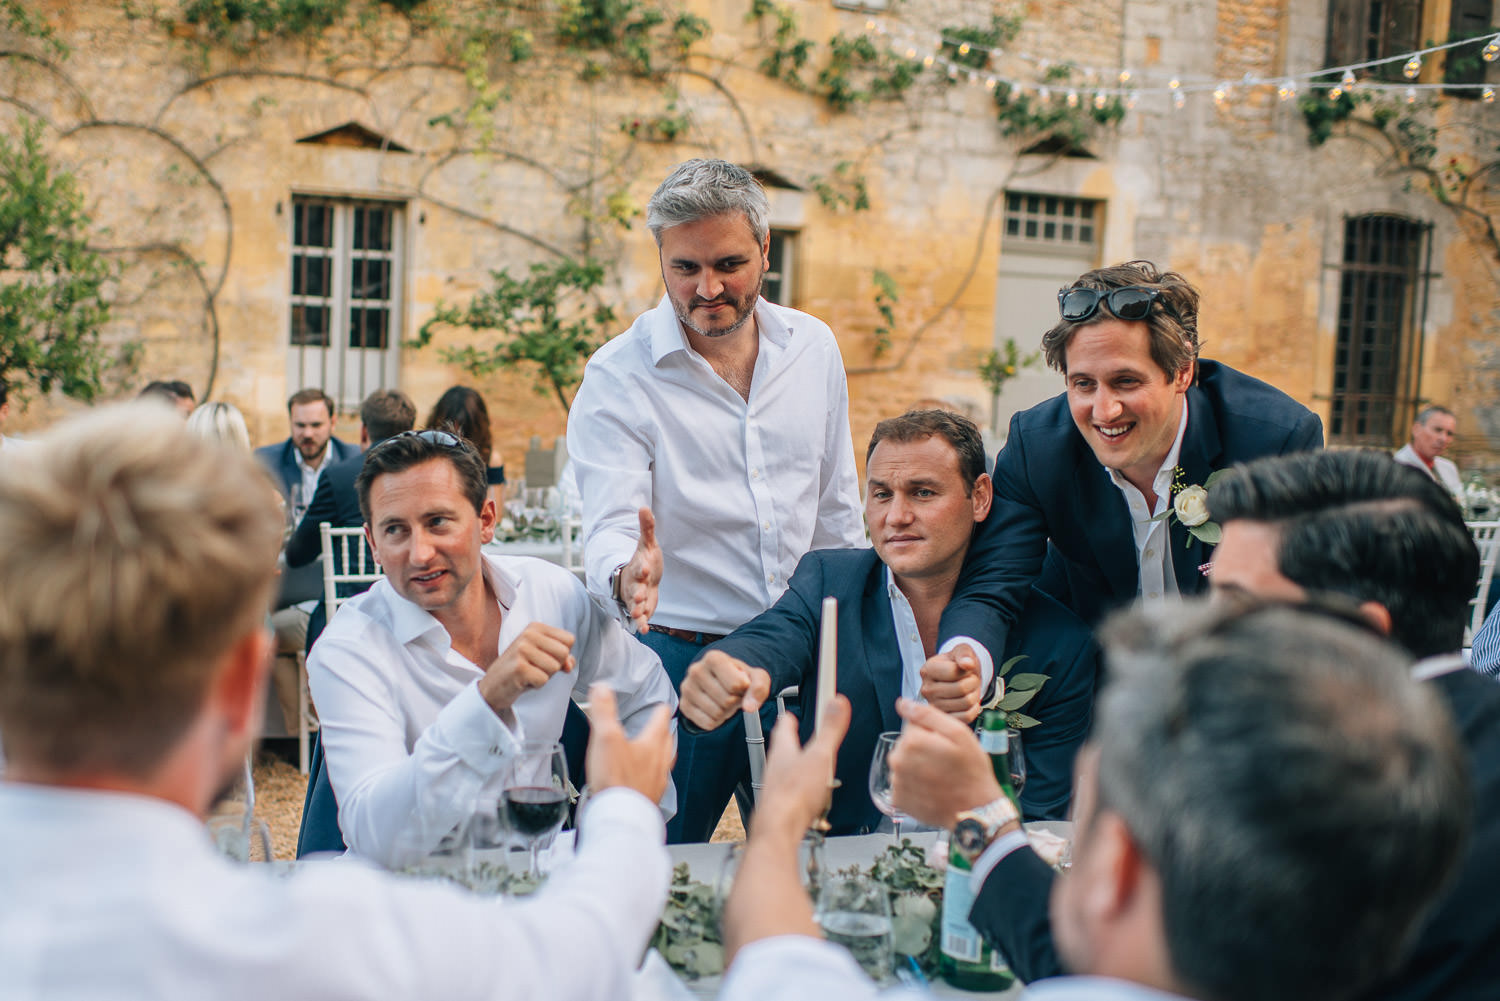 Groom with guests in courtyard in chateau de la bourlie wedding by french destination wedding photographer the shannons photography